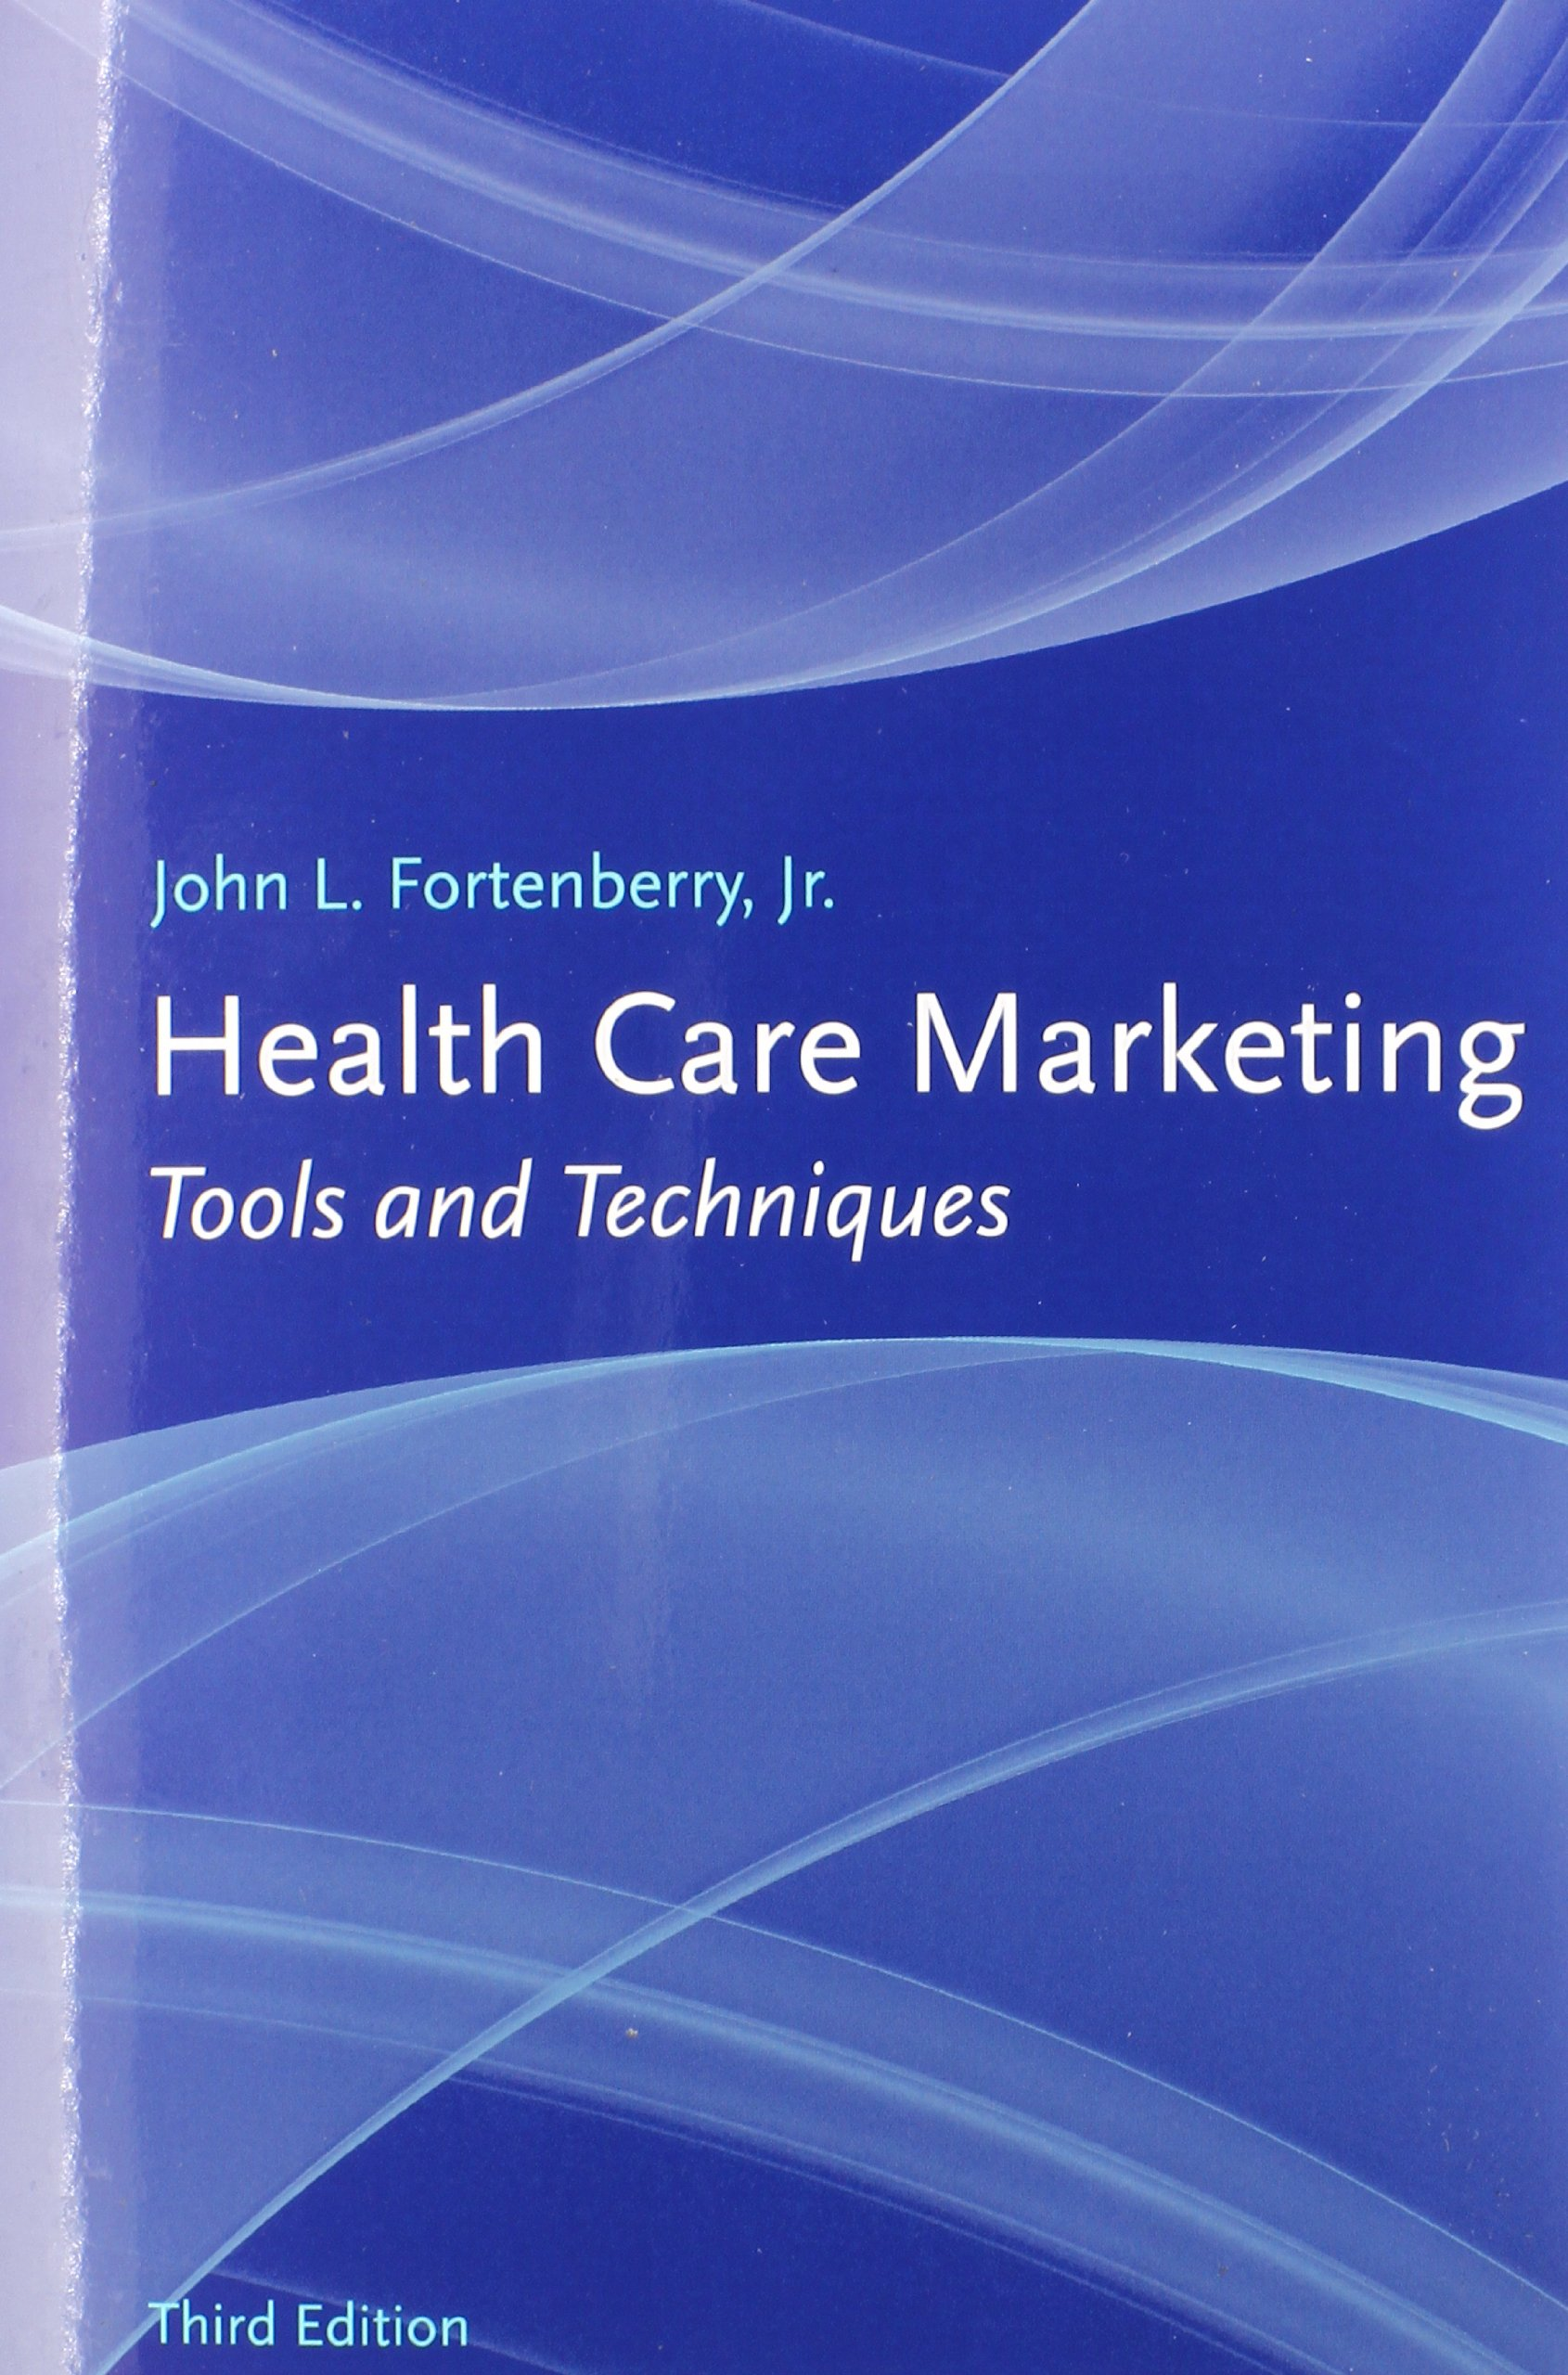 Health Care Marketing: Tools and Techniques